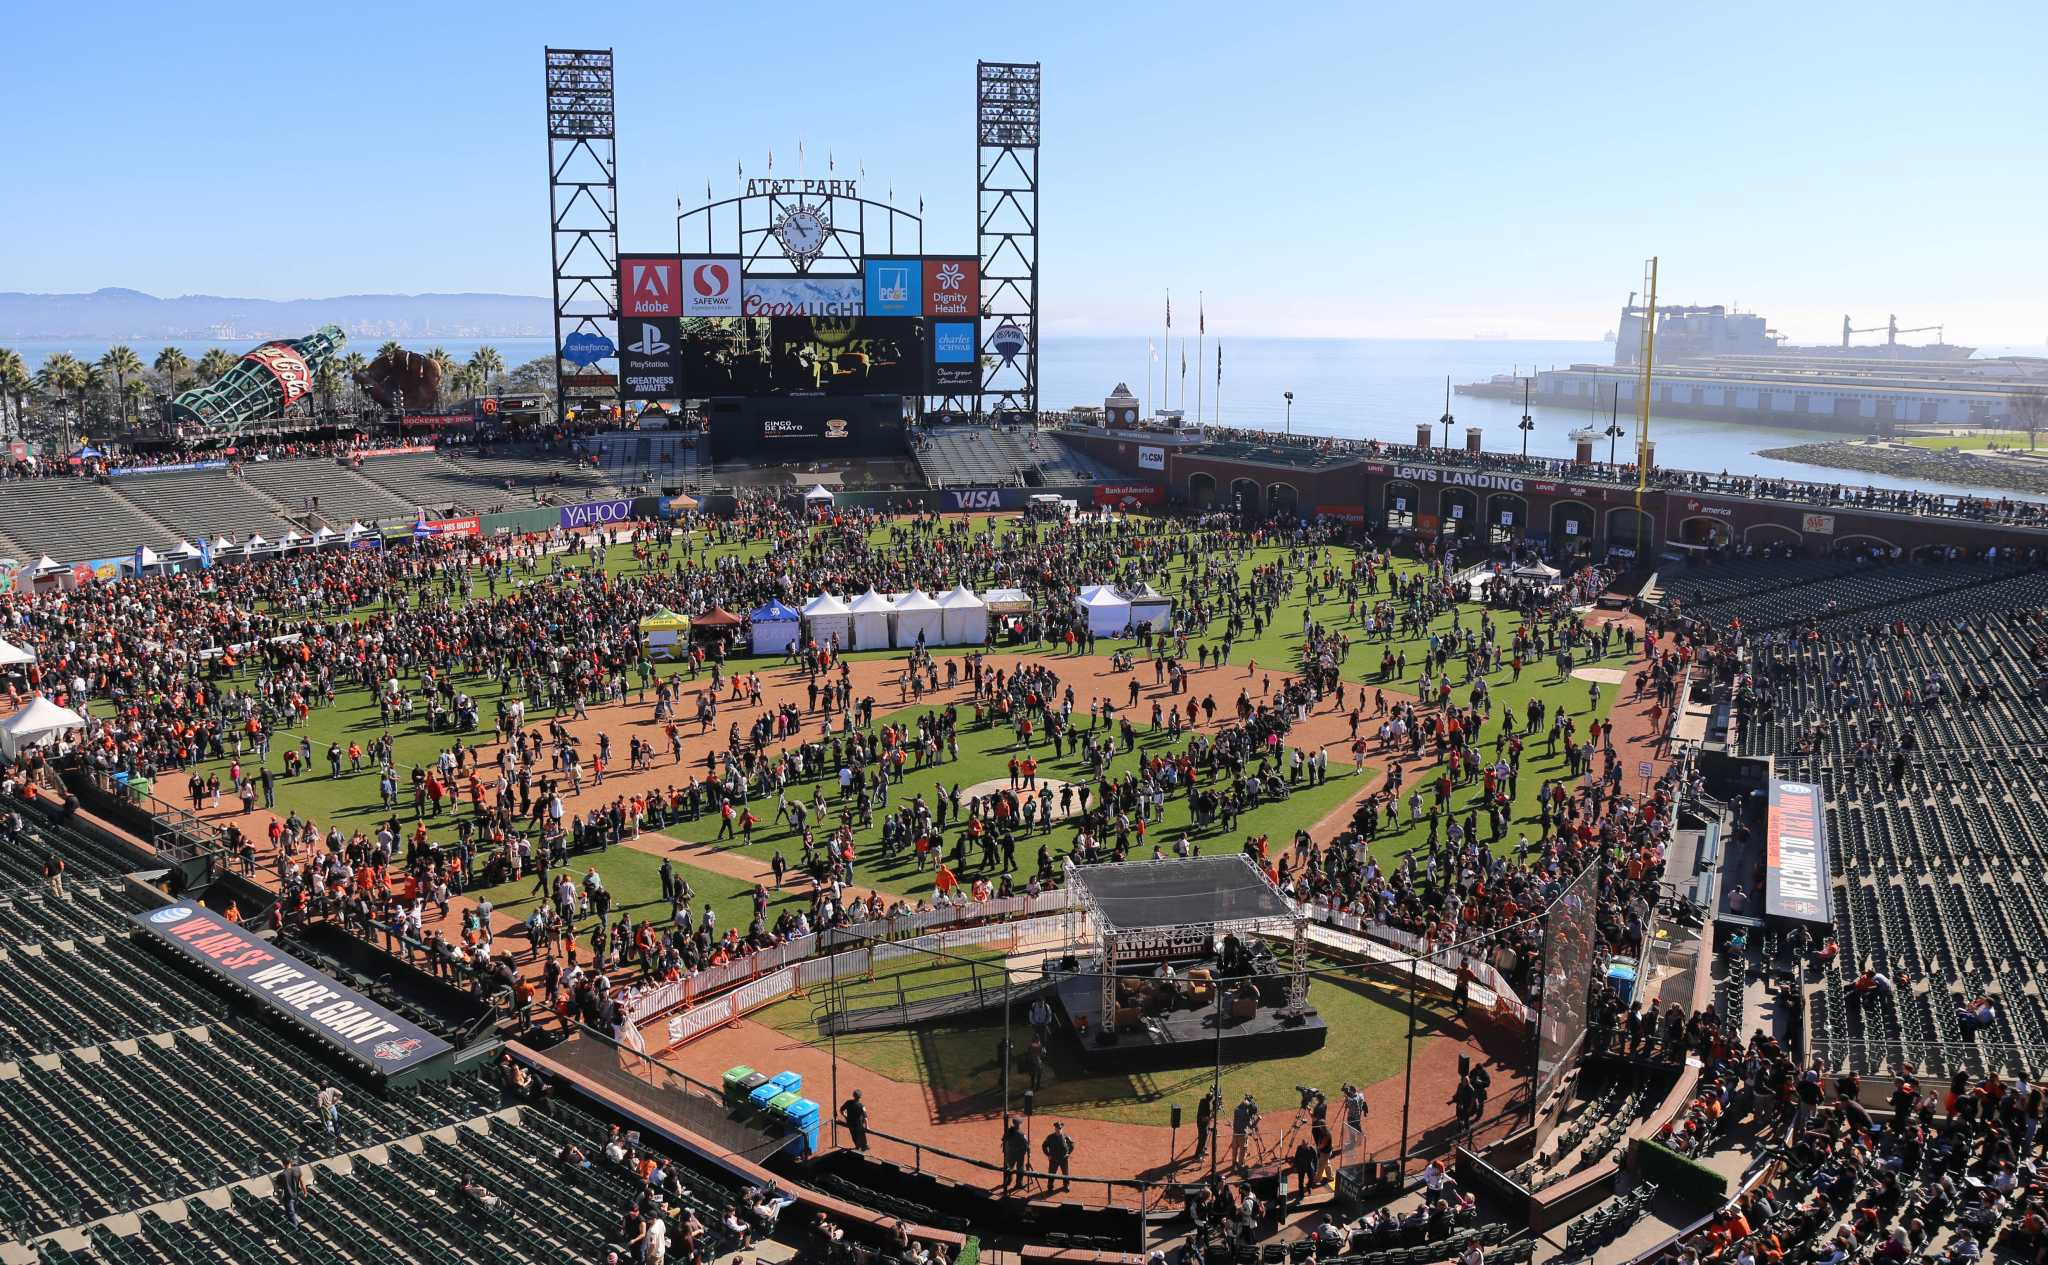 Students flock to AT&T park to enjoy Giants FanFest